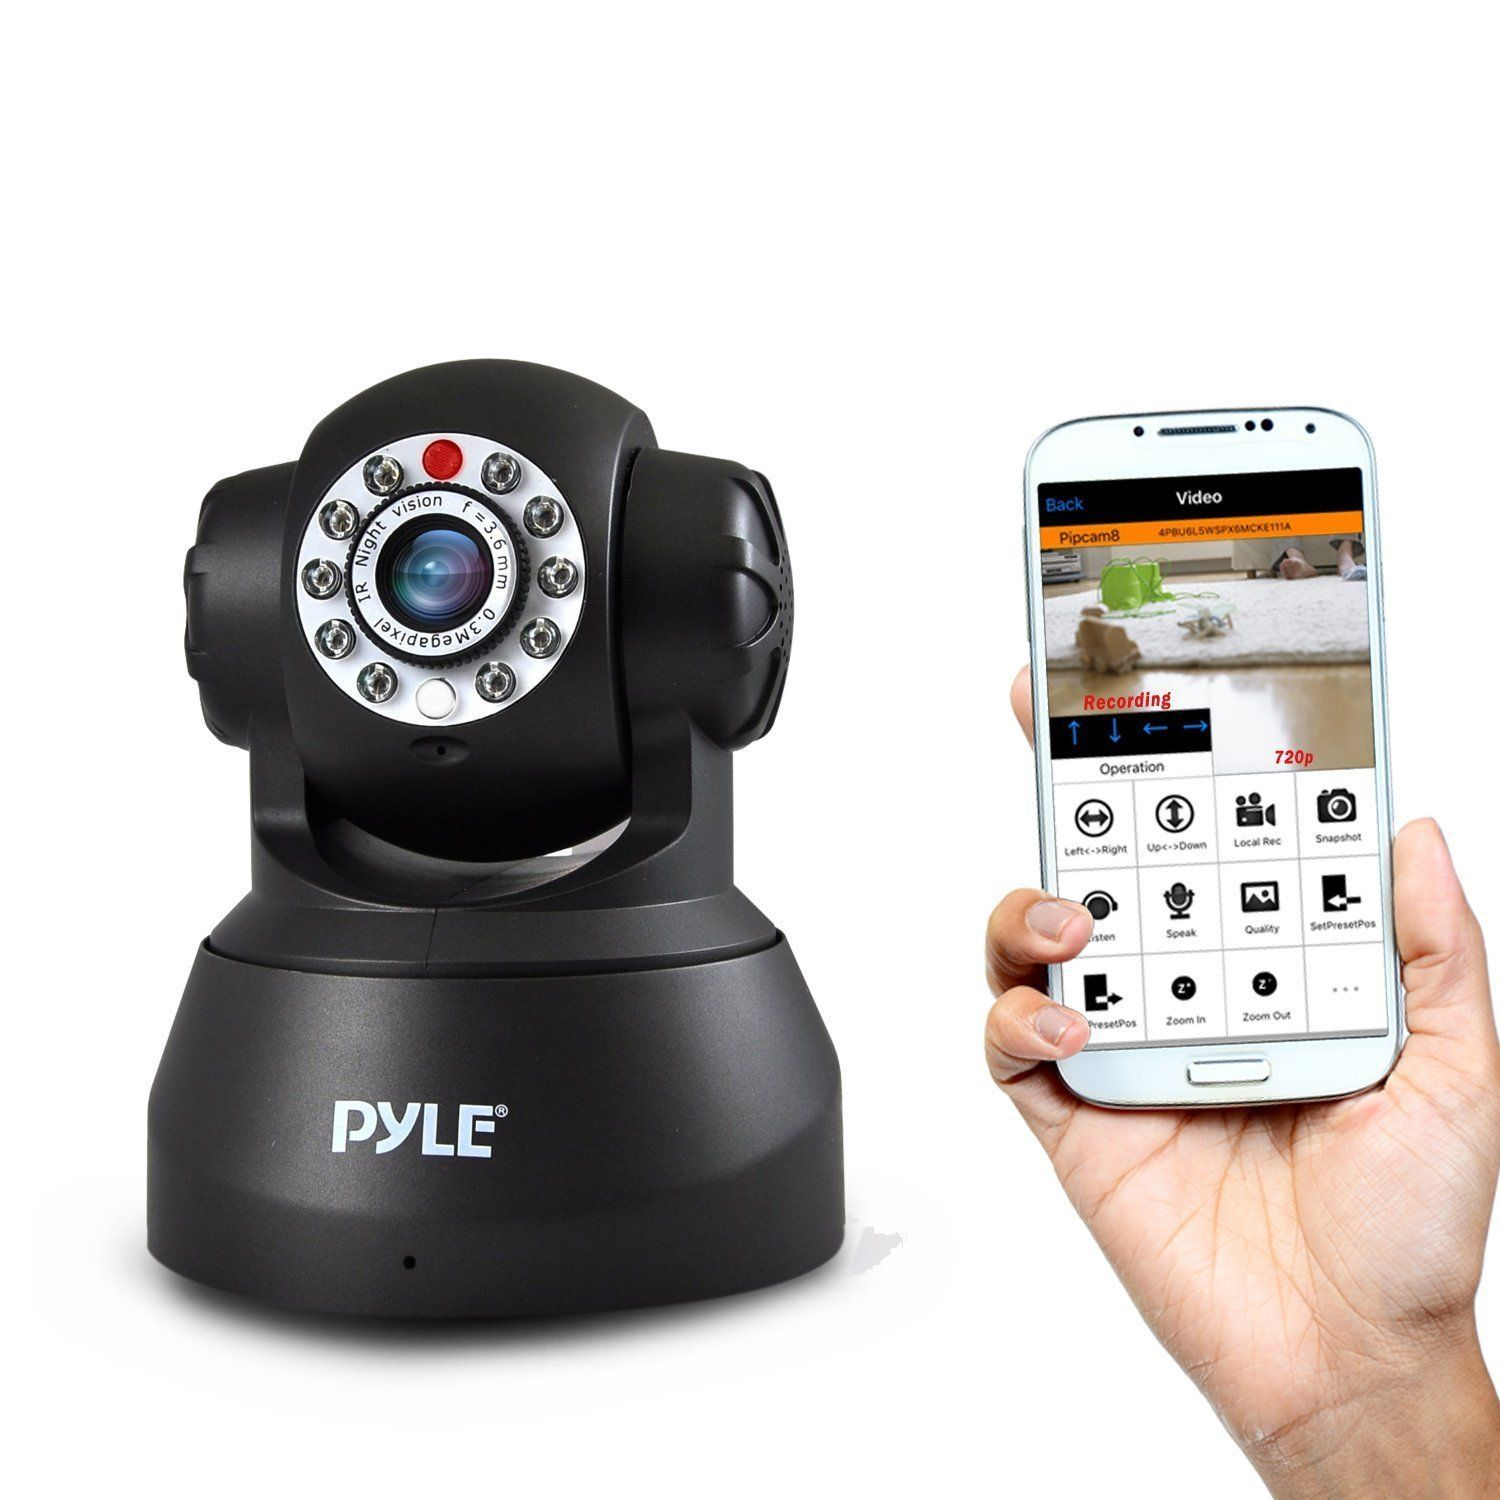 Pyle pipcam ip camera surveilance security monitor with Ip camera